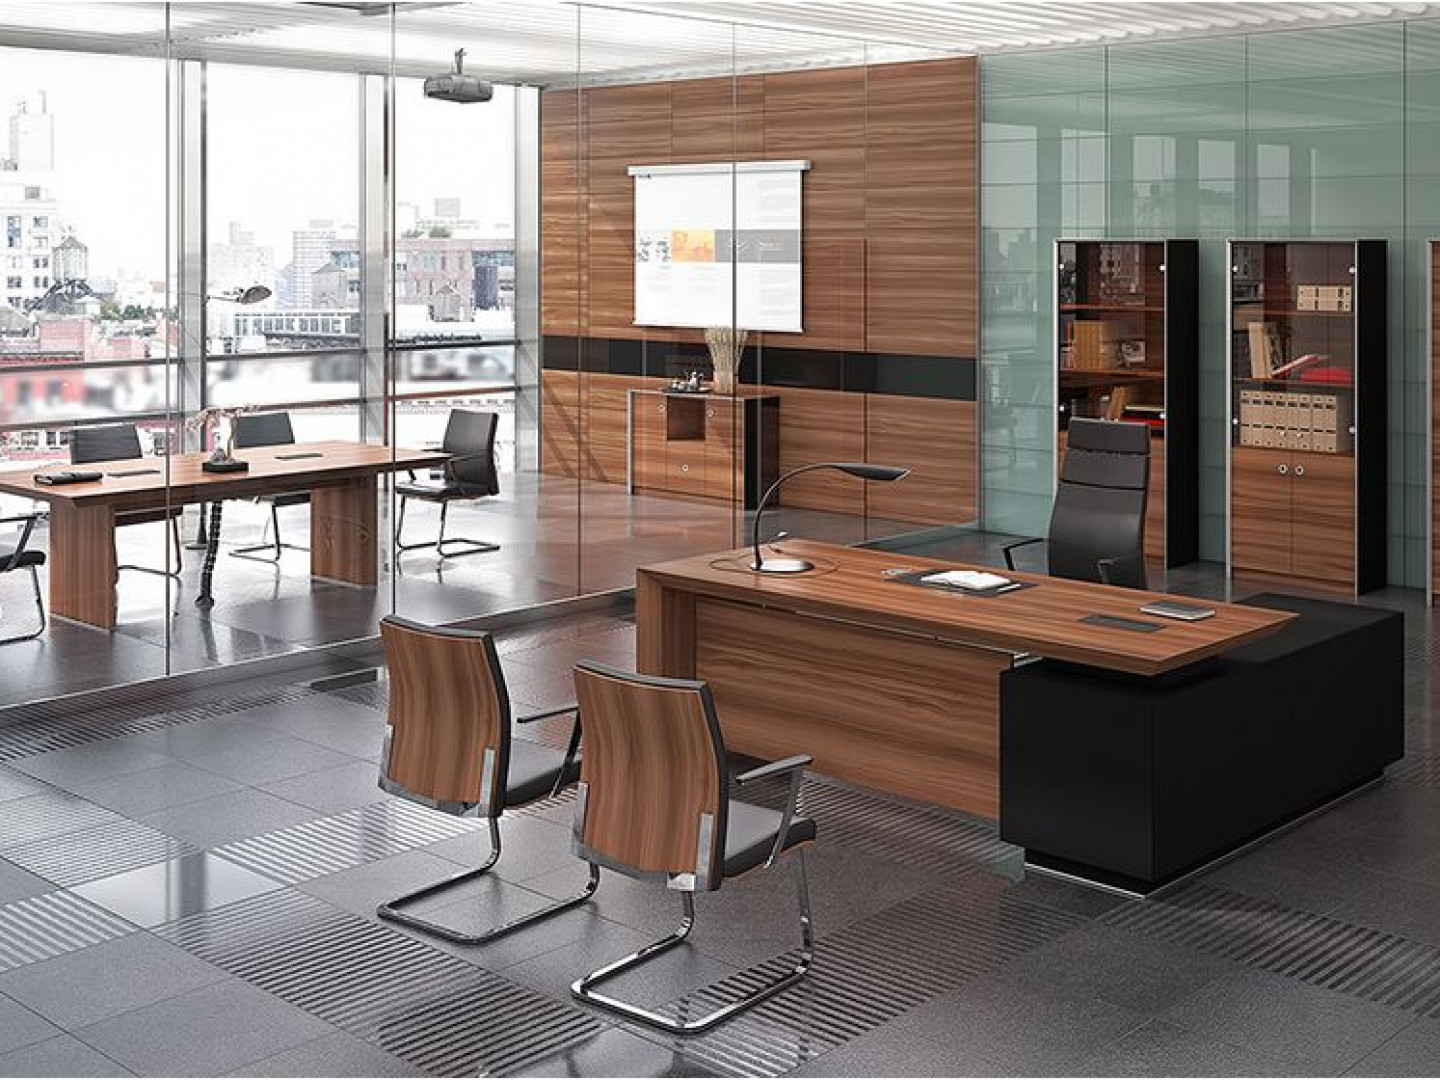 Want Customized Cabinets for Your Business?